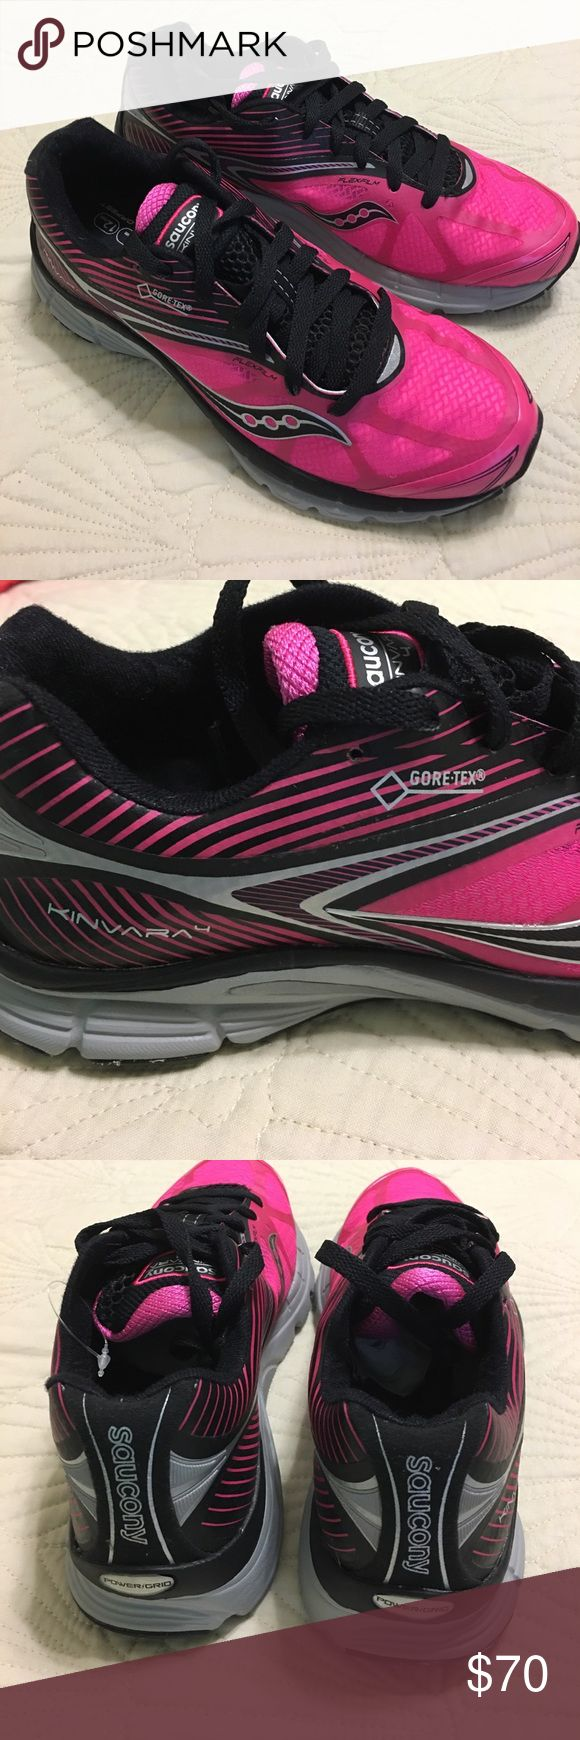 Brand New Saucony Kinvara 4 Brand new Saucony Kinvara 4 Women's running shoe. Size  7.5 SUPER cute and no longer available in stores! Never worn! Still have tissue but no box. Saucony Shoes Sneakers